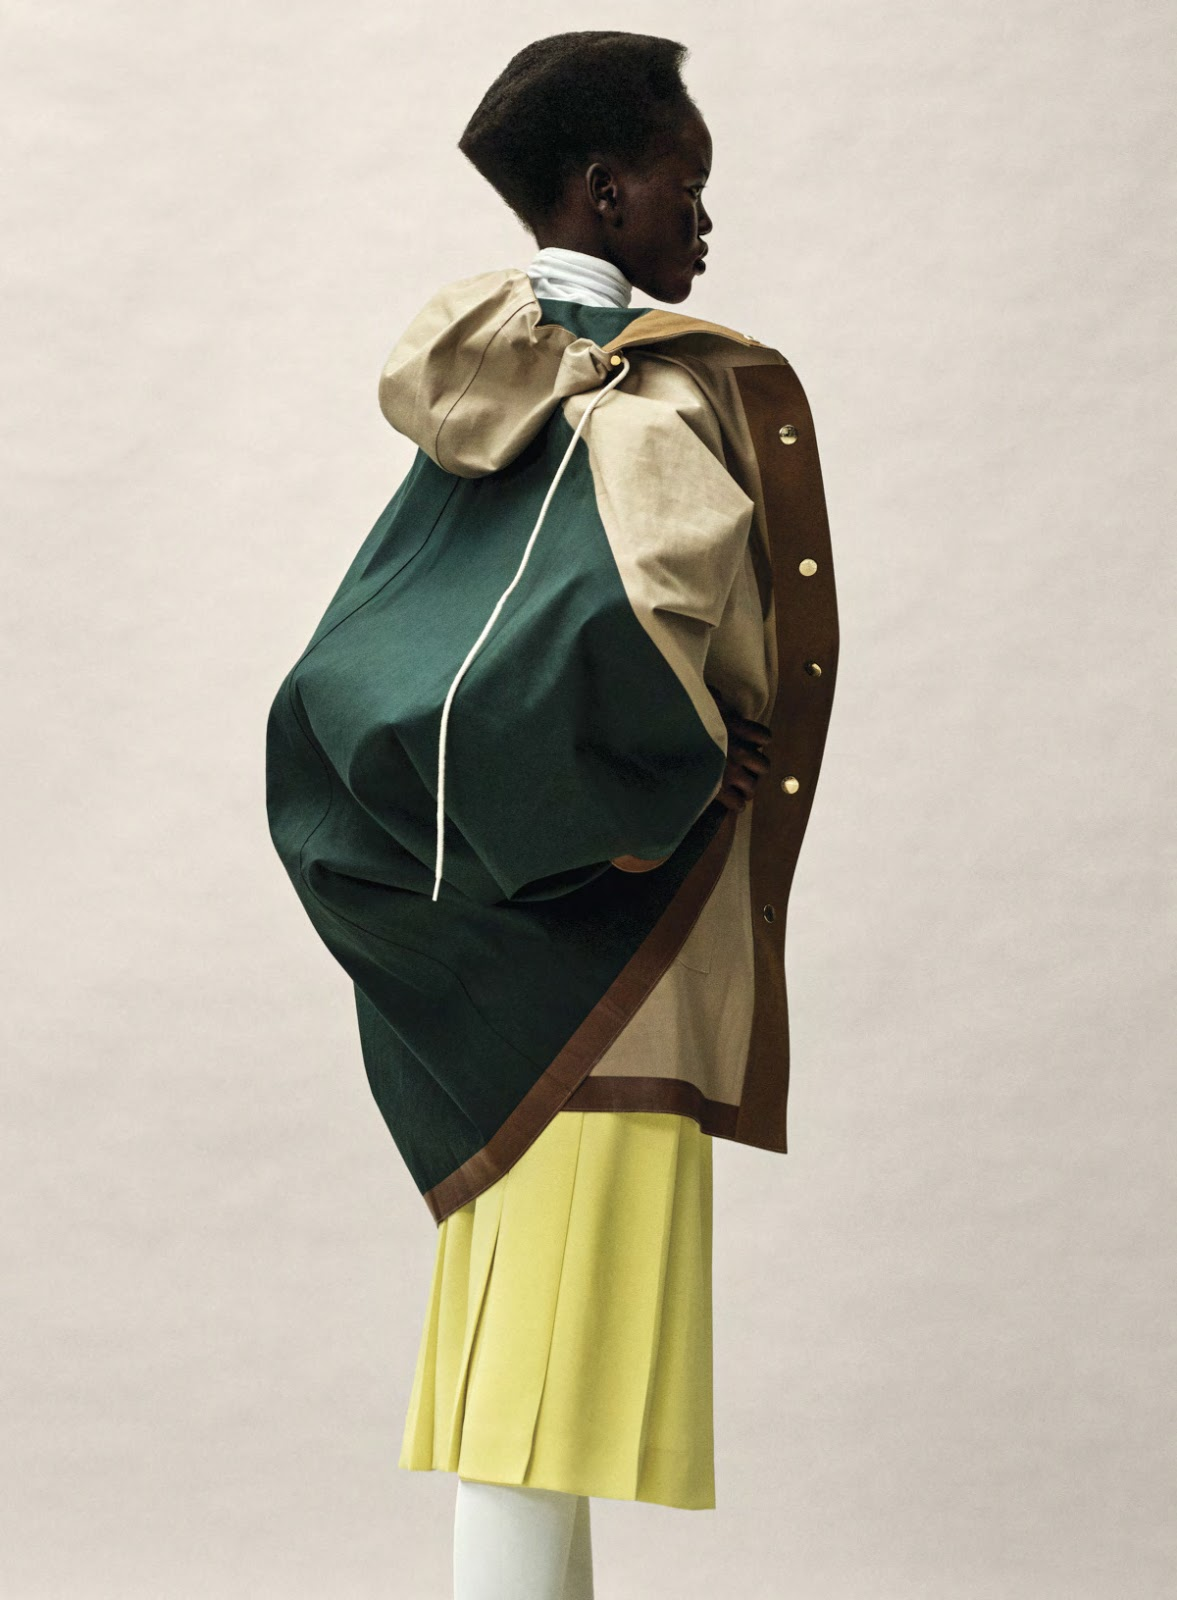 Adut Akech by Josh Olins for Vogue US January 2019 (2).jpg